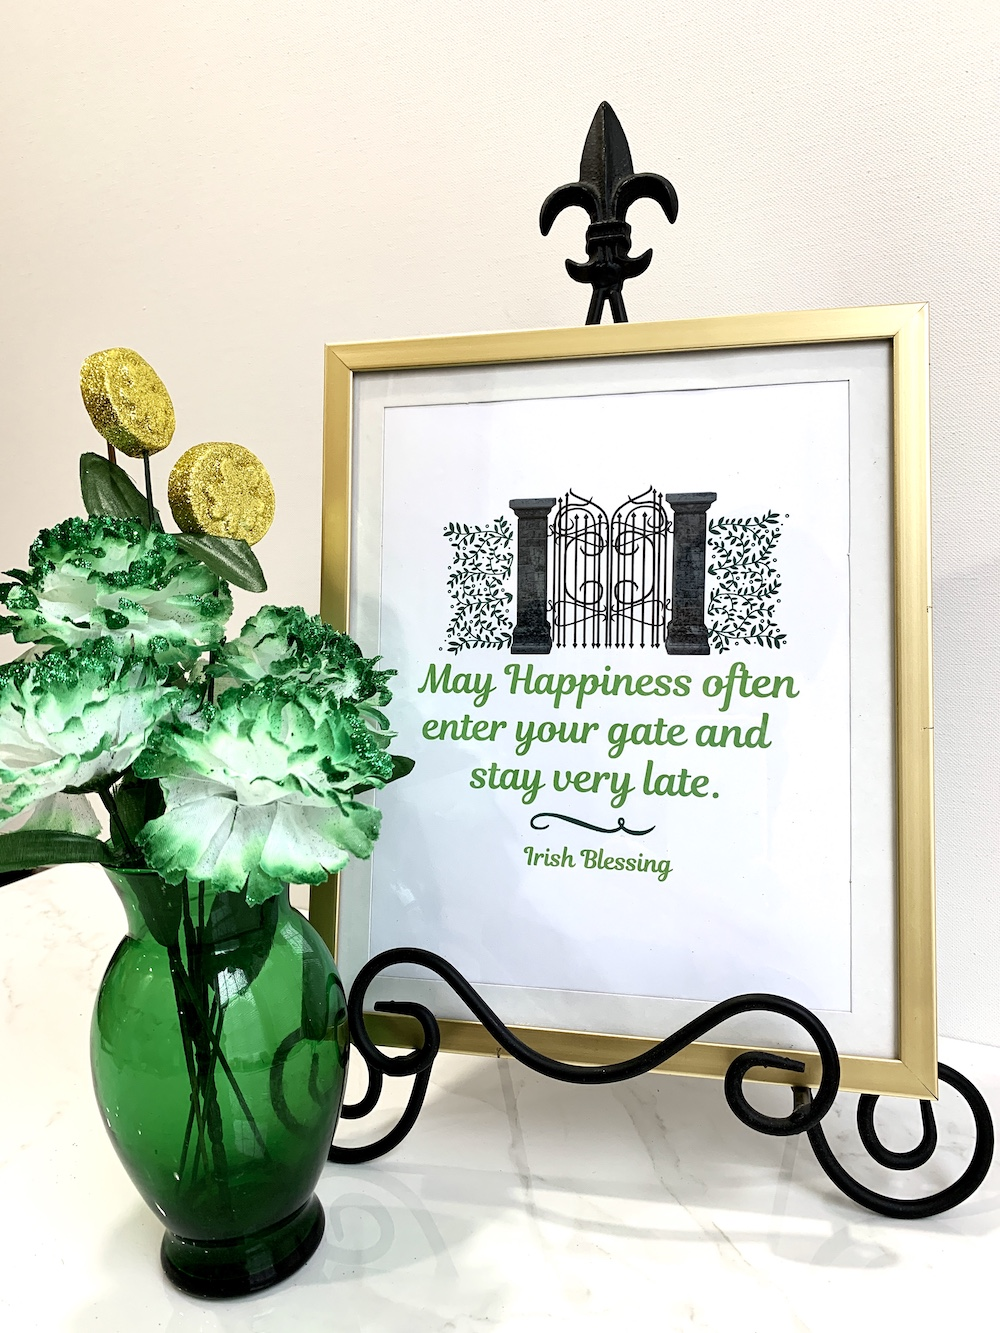 Irish Blessing Free Printable Irish Blessing #DIY #Affordable #SimpleDecor #QuickAndEasy #BudgetFriendly #StPatrick #StPatricksDay #StPatricksDecor #FreePrintable #IrishBlessing #WallArt #FreeWallArt